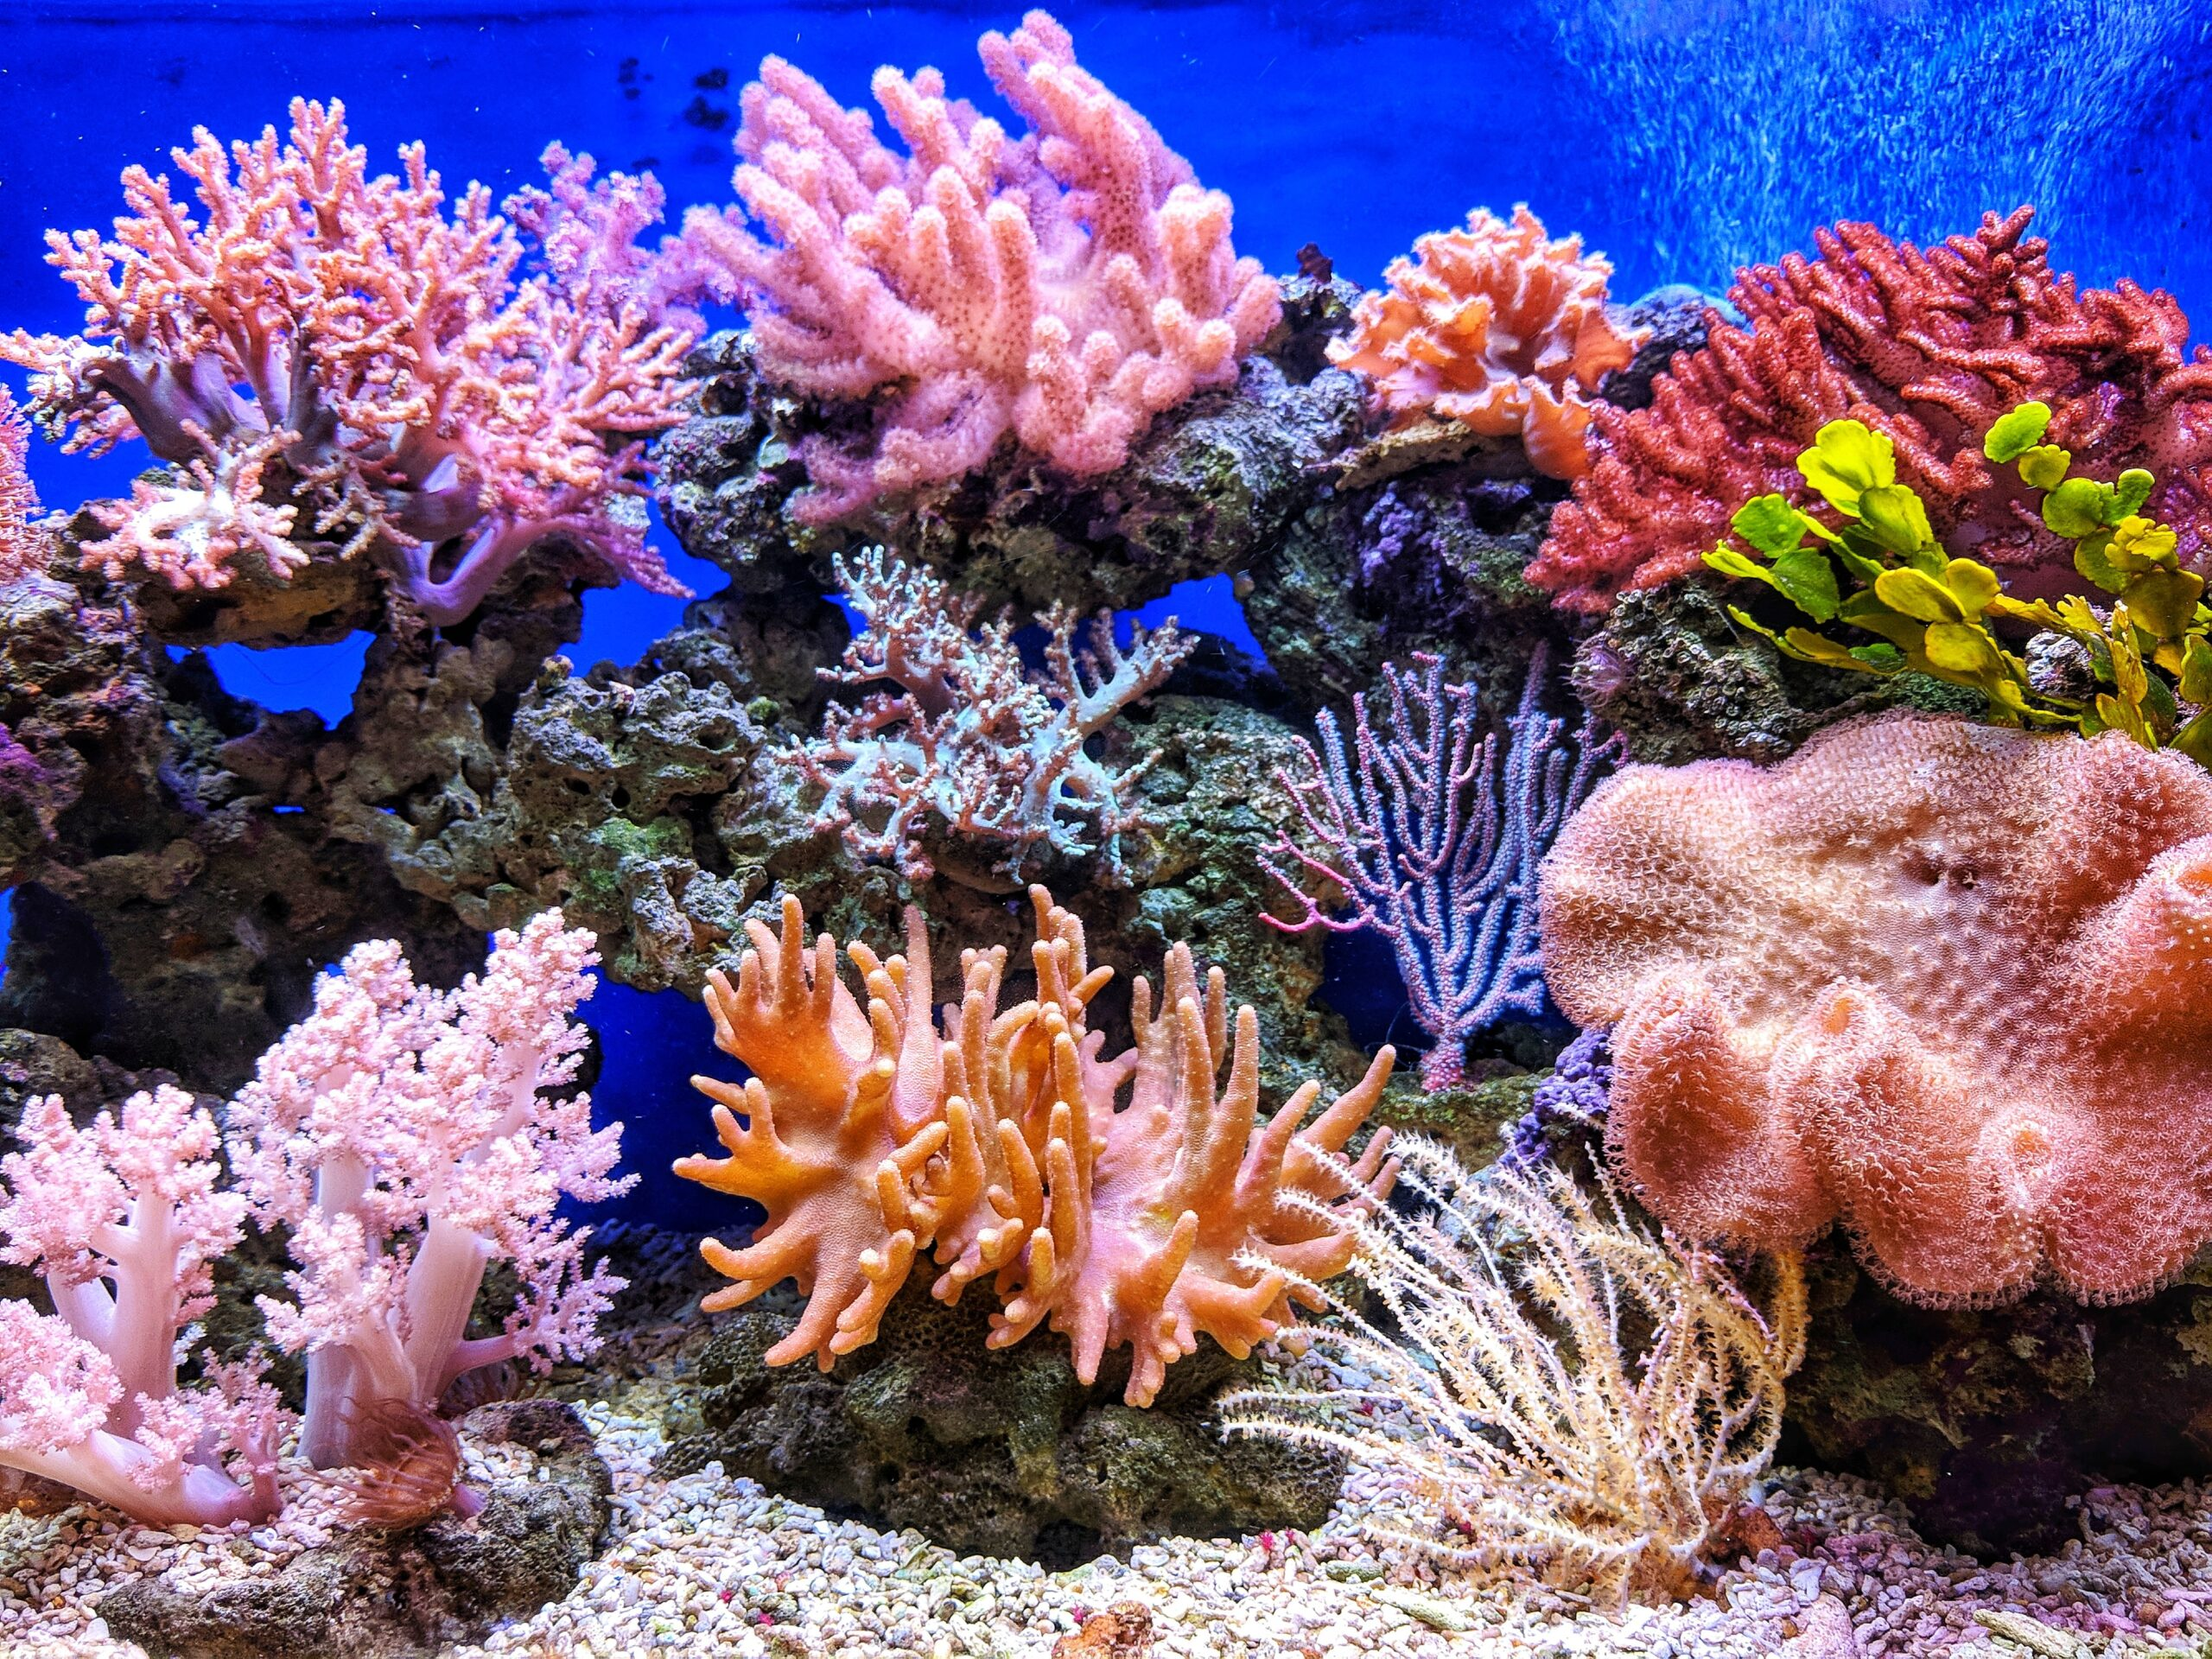 Climate Change Killed 14% of the World's Coral Reefs in Last Decade